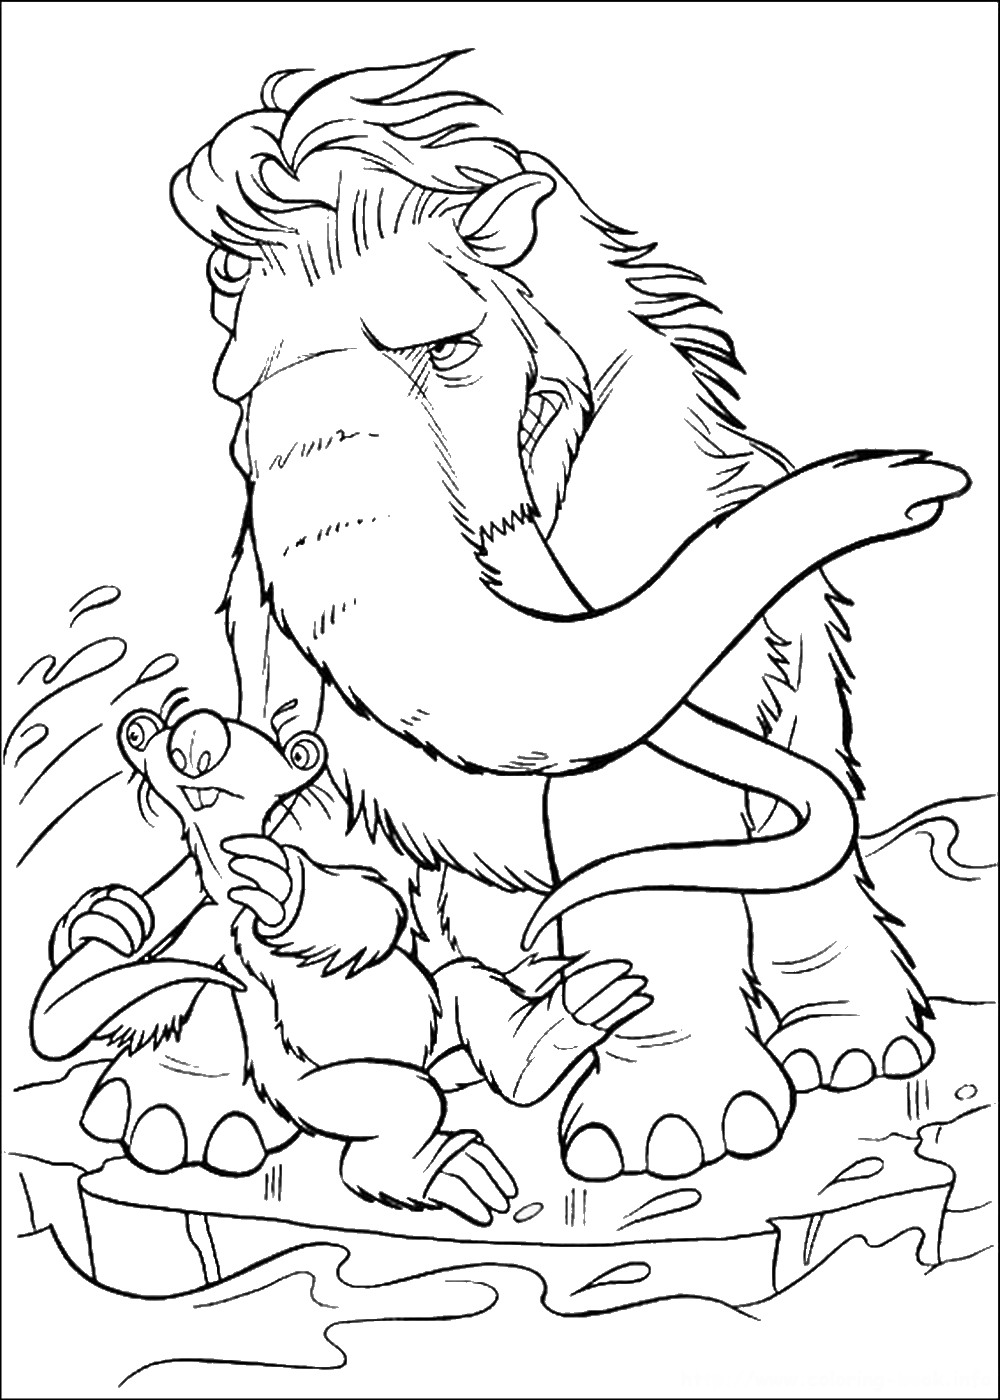 Ice age 4 coloring pages